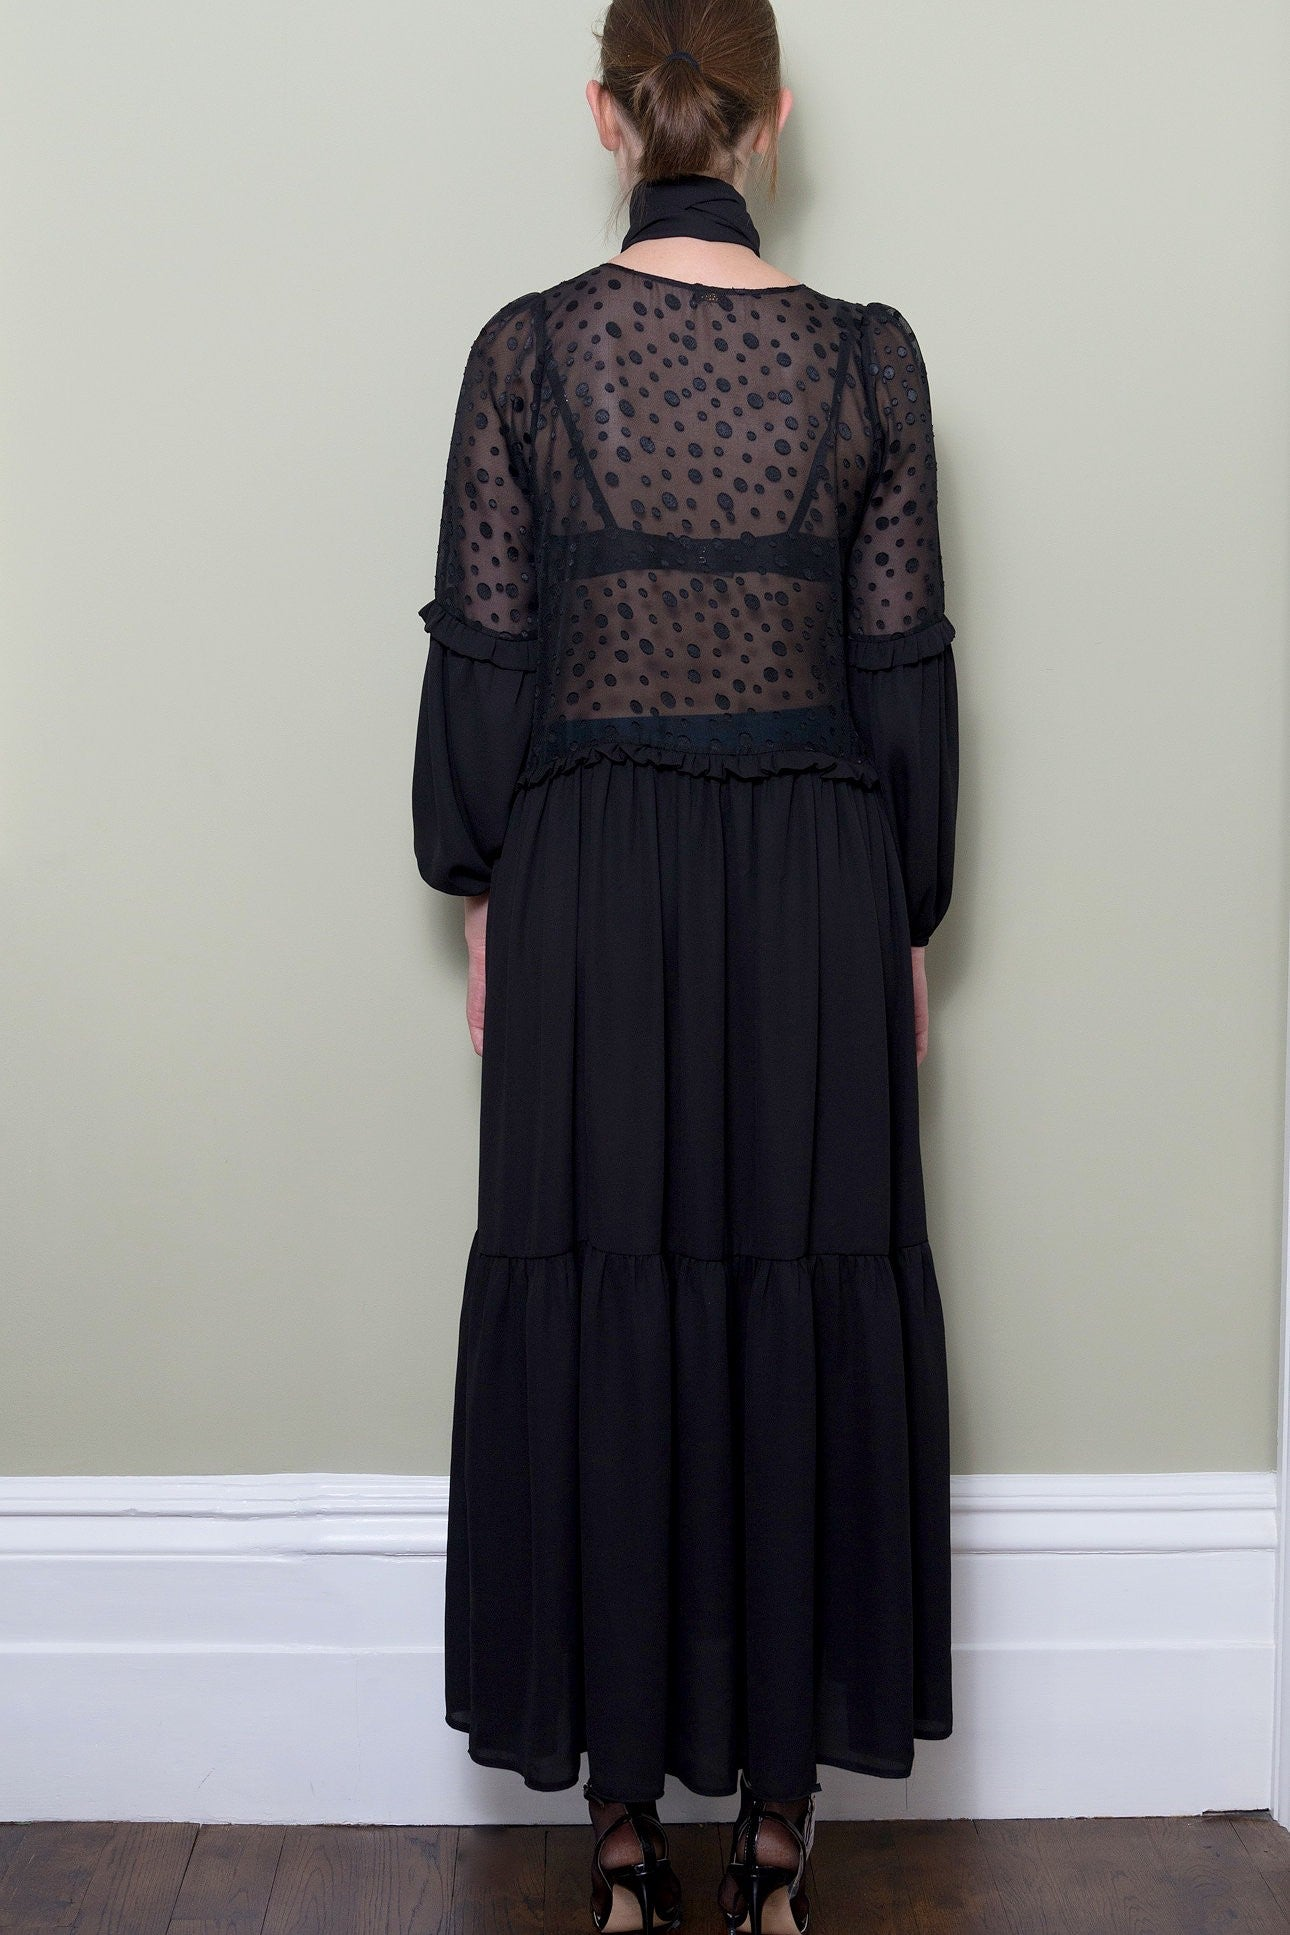 7a895afdccf Black Polka Dot Maxi Dress With Frill Detail by Minkie London on OOSTOR.com